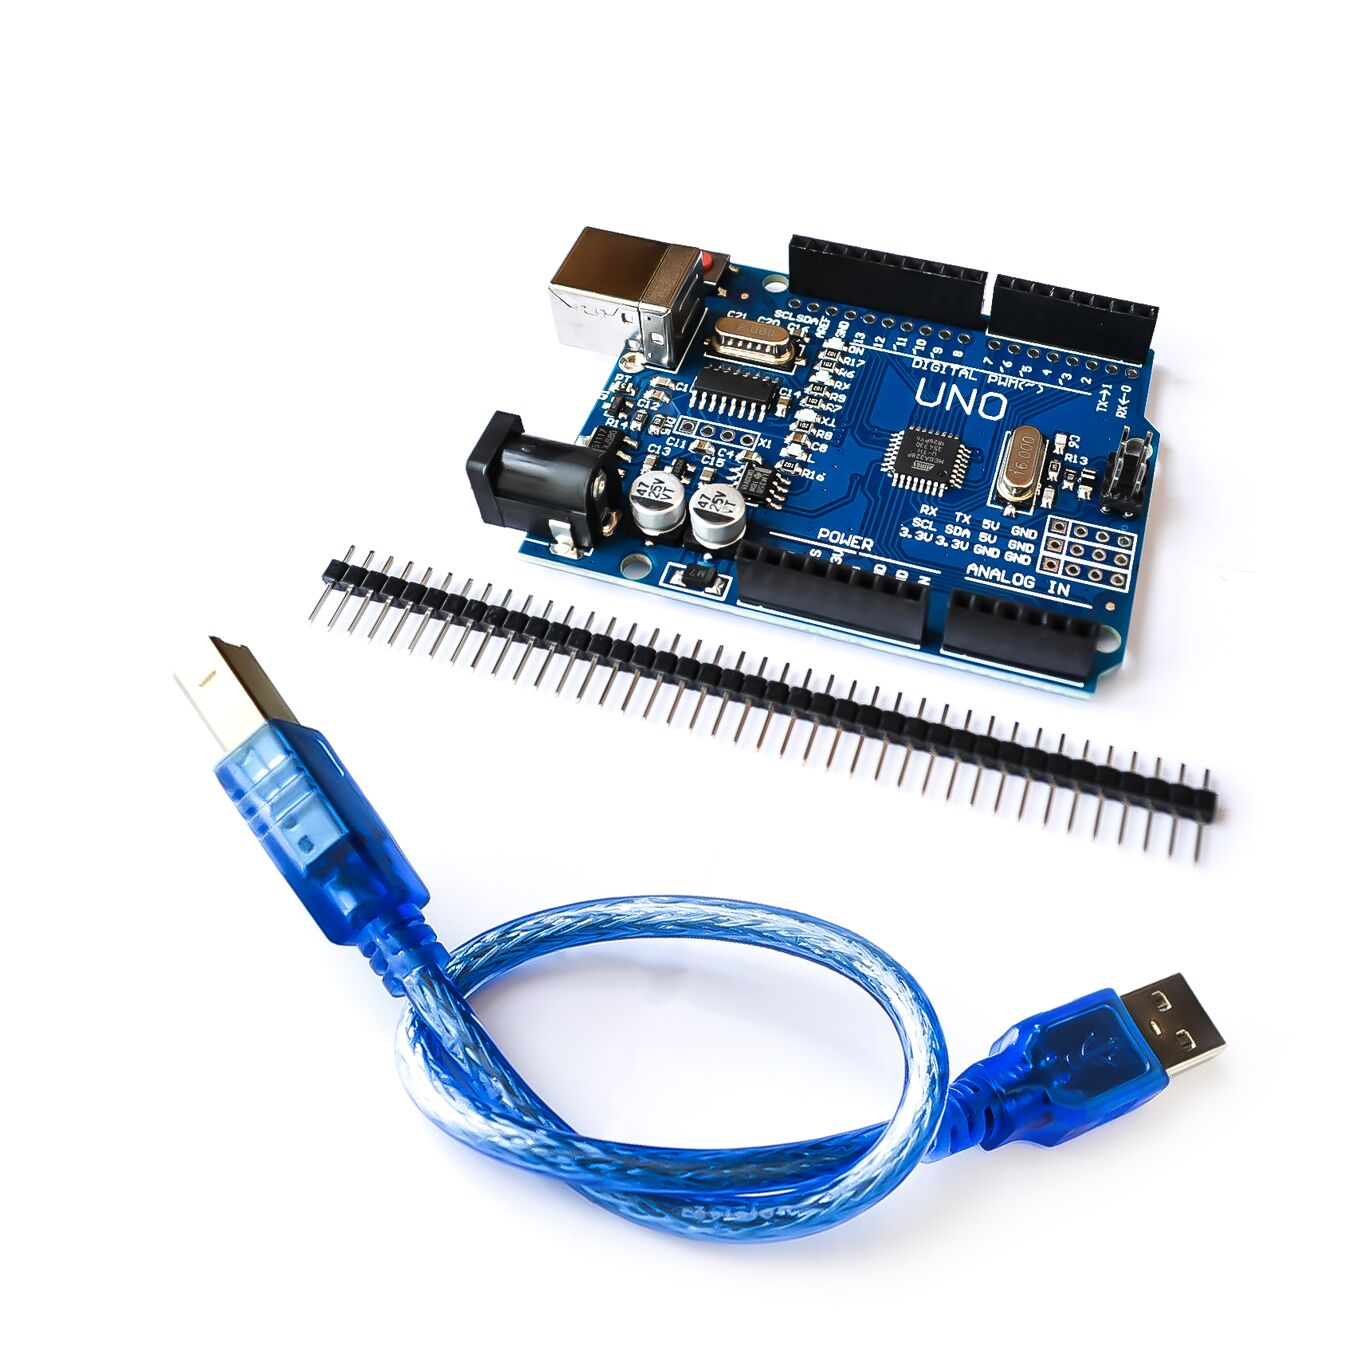 10set/lot UNO R3 UNO board with usb cable for arduino(Compatible)